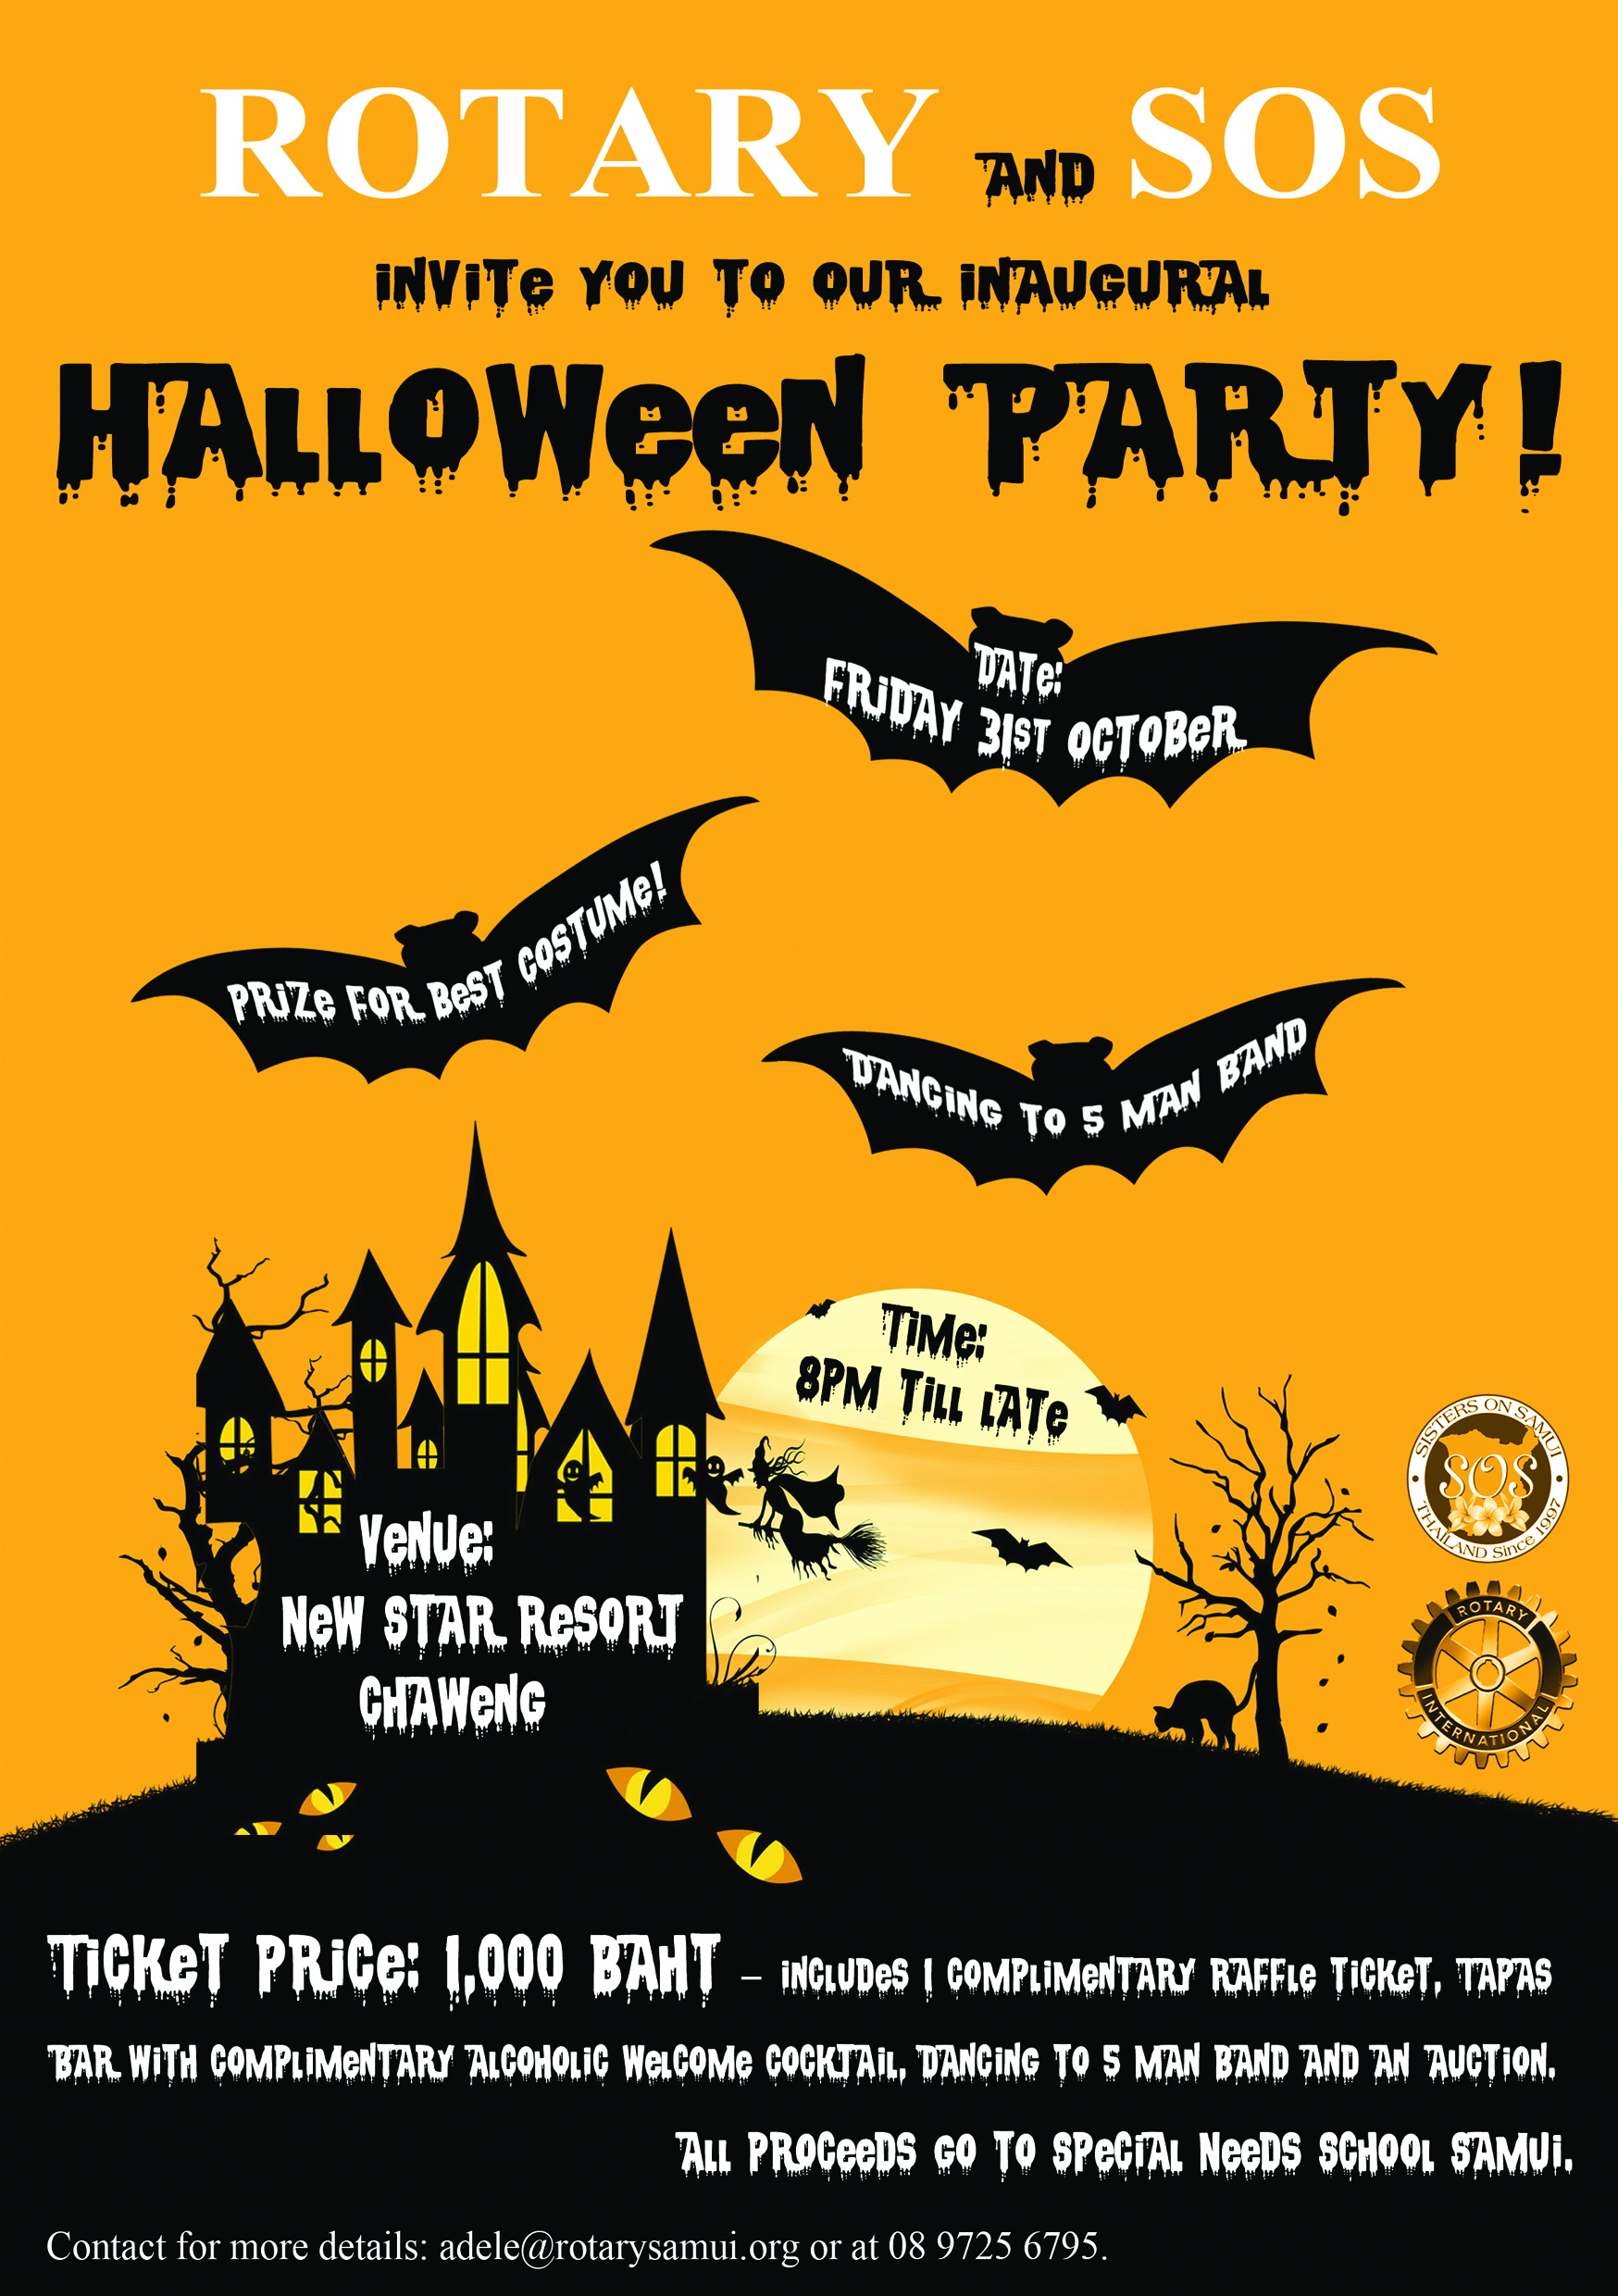 The Rotary and SOS invite you to the biggest Halloween Party | Samui Times